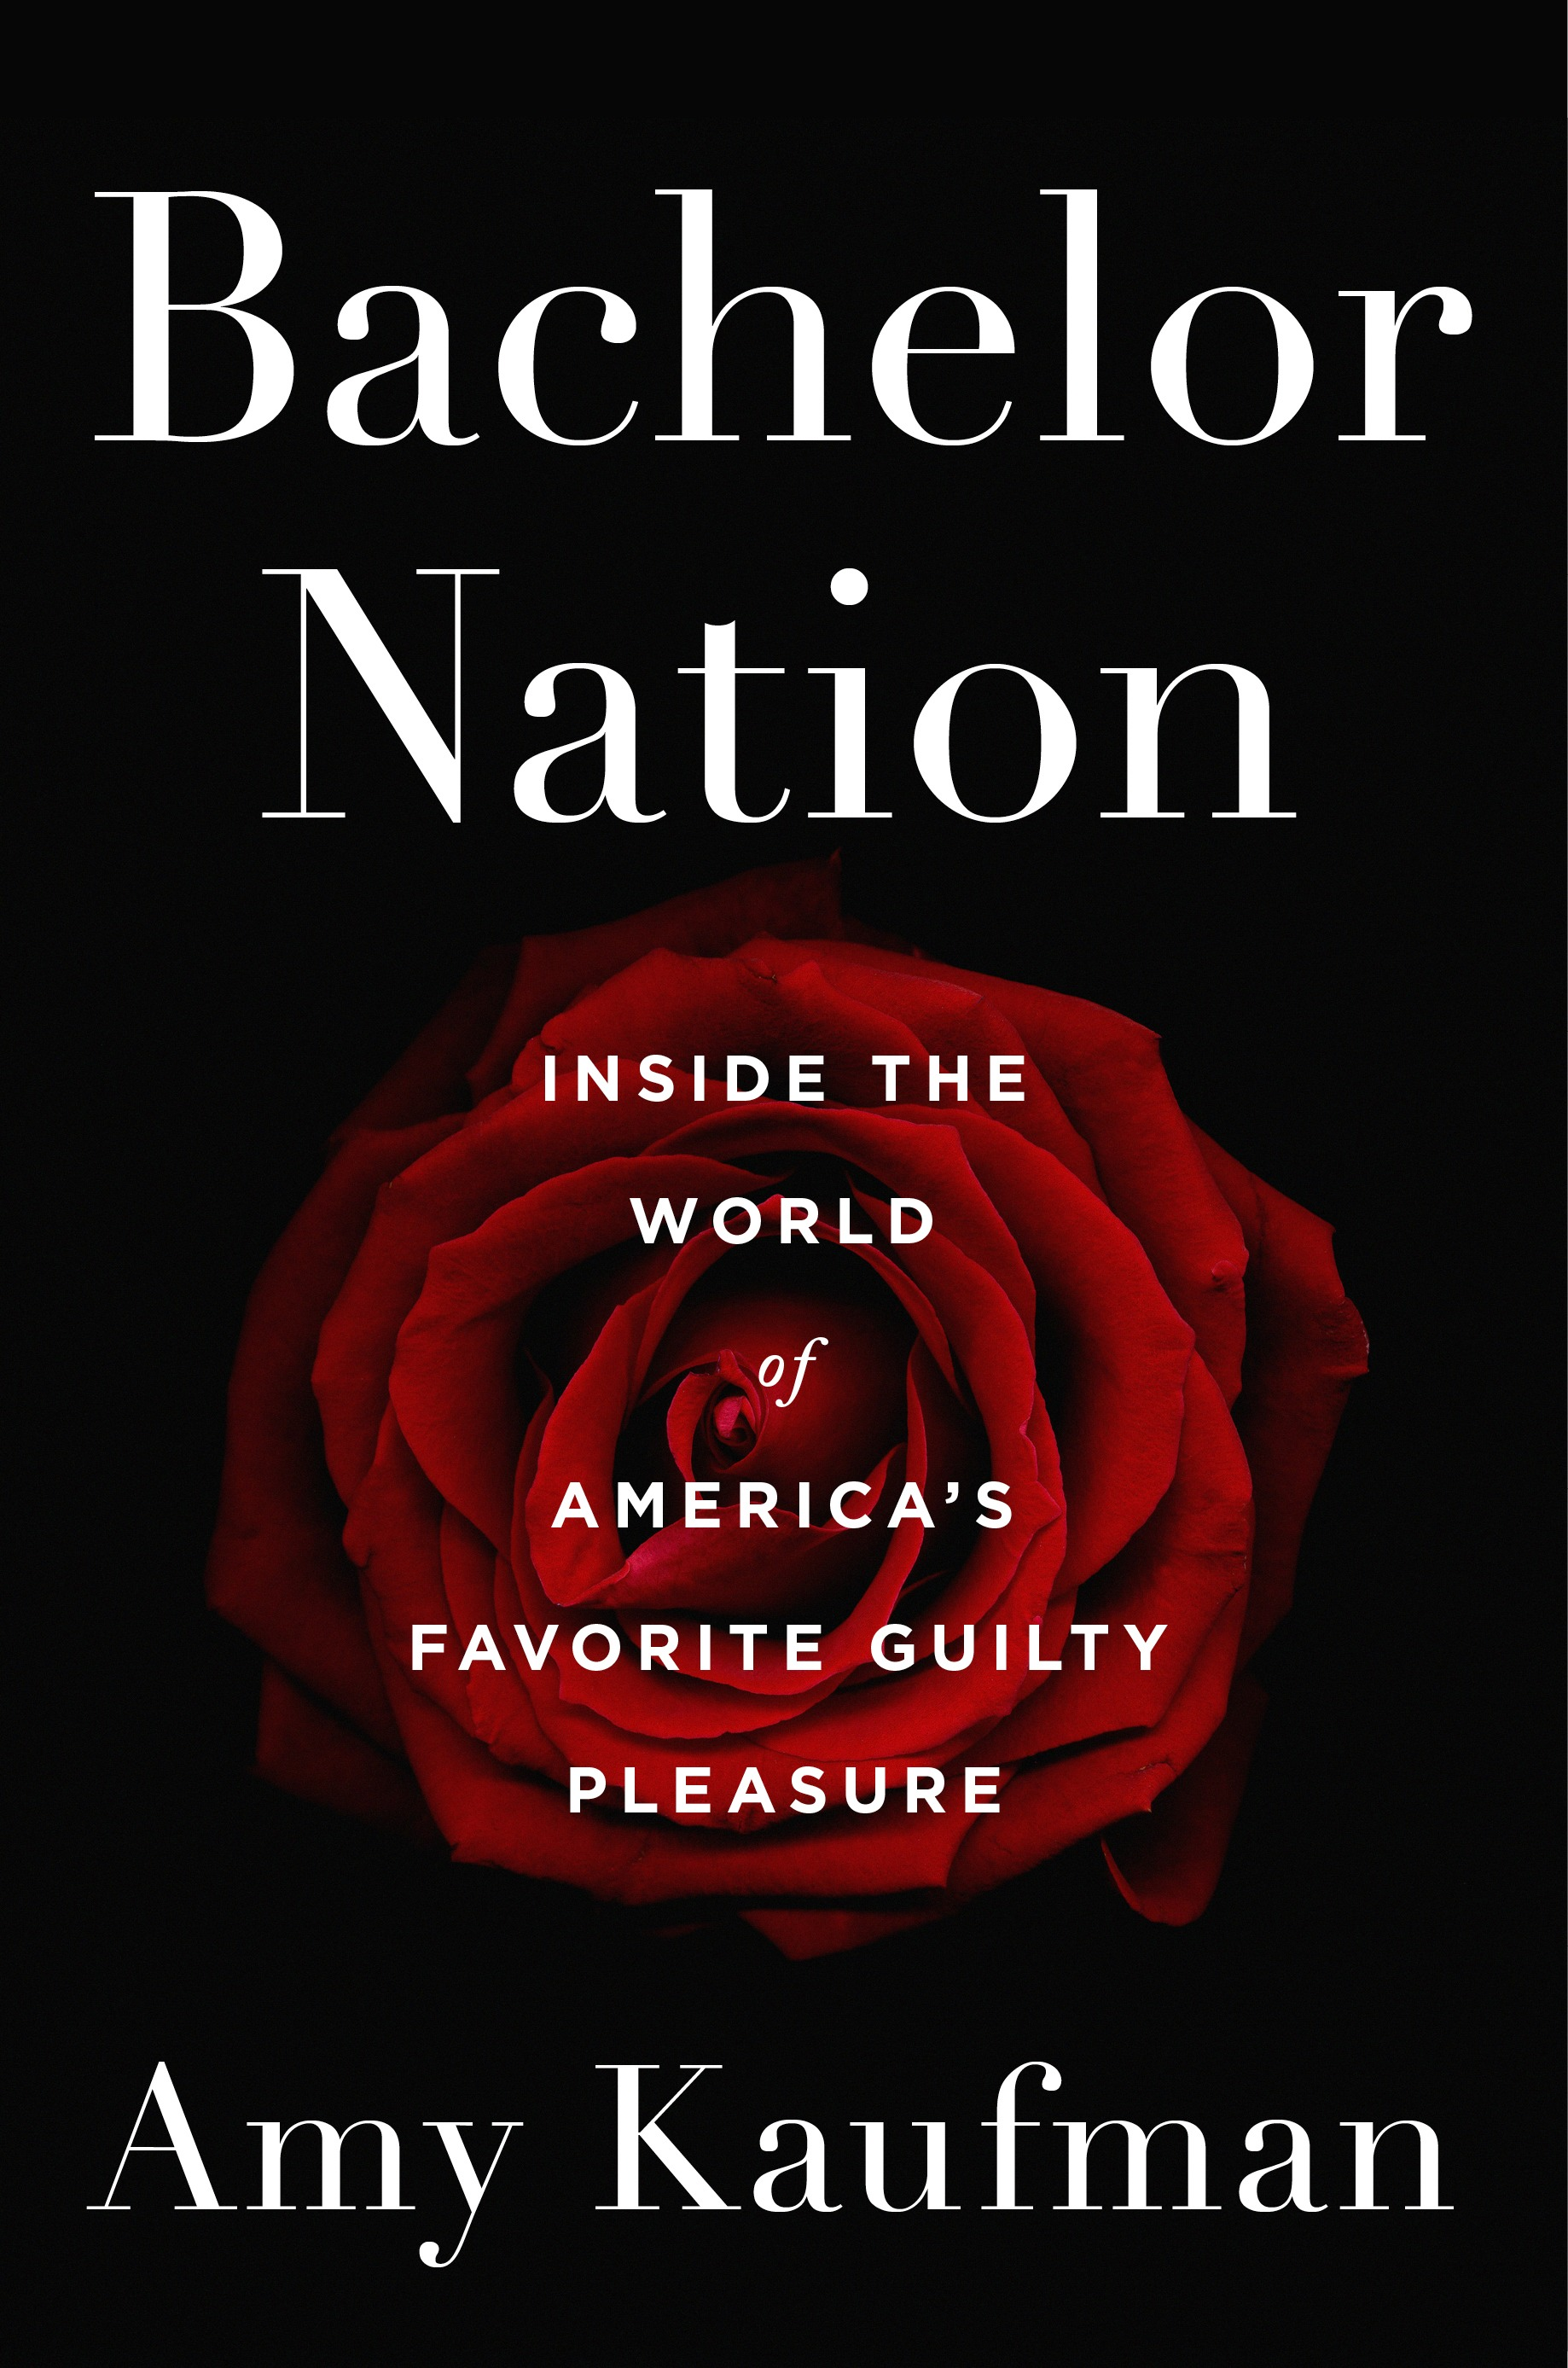 """Bachelor Nation: Inside the World of America's Favorite Guilty Pleasure"" by Amy Kaufman (Image: Courtesy Dutton){ }"